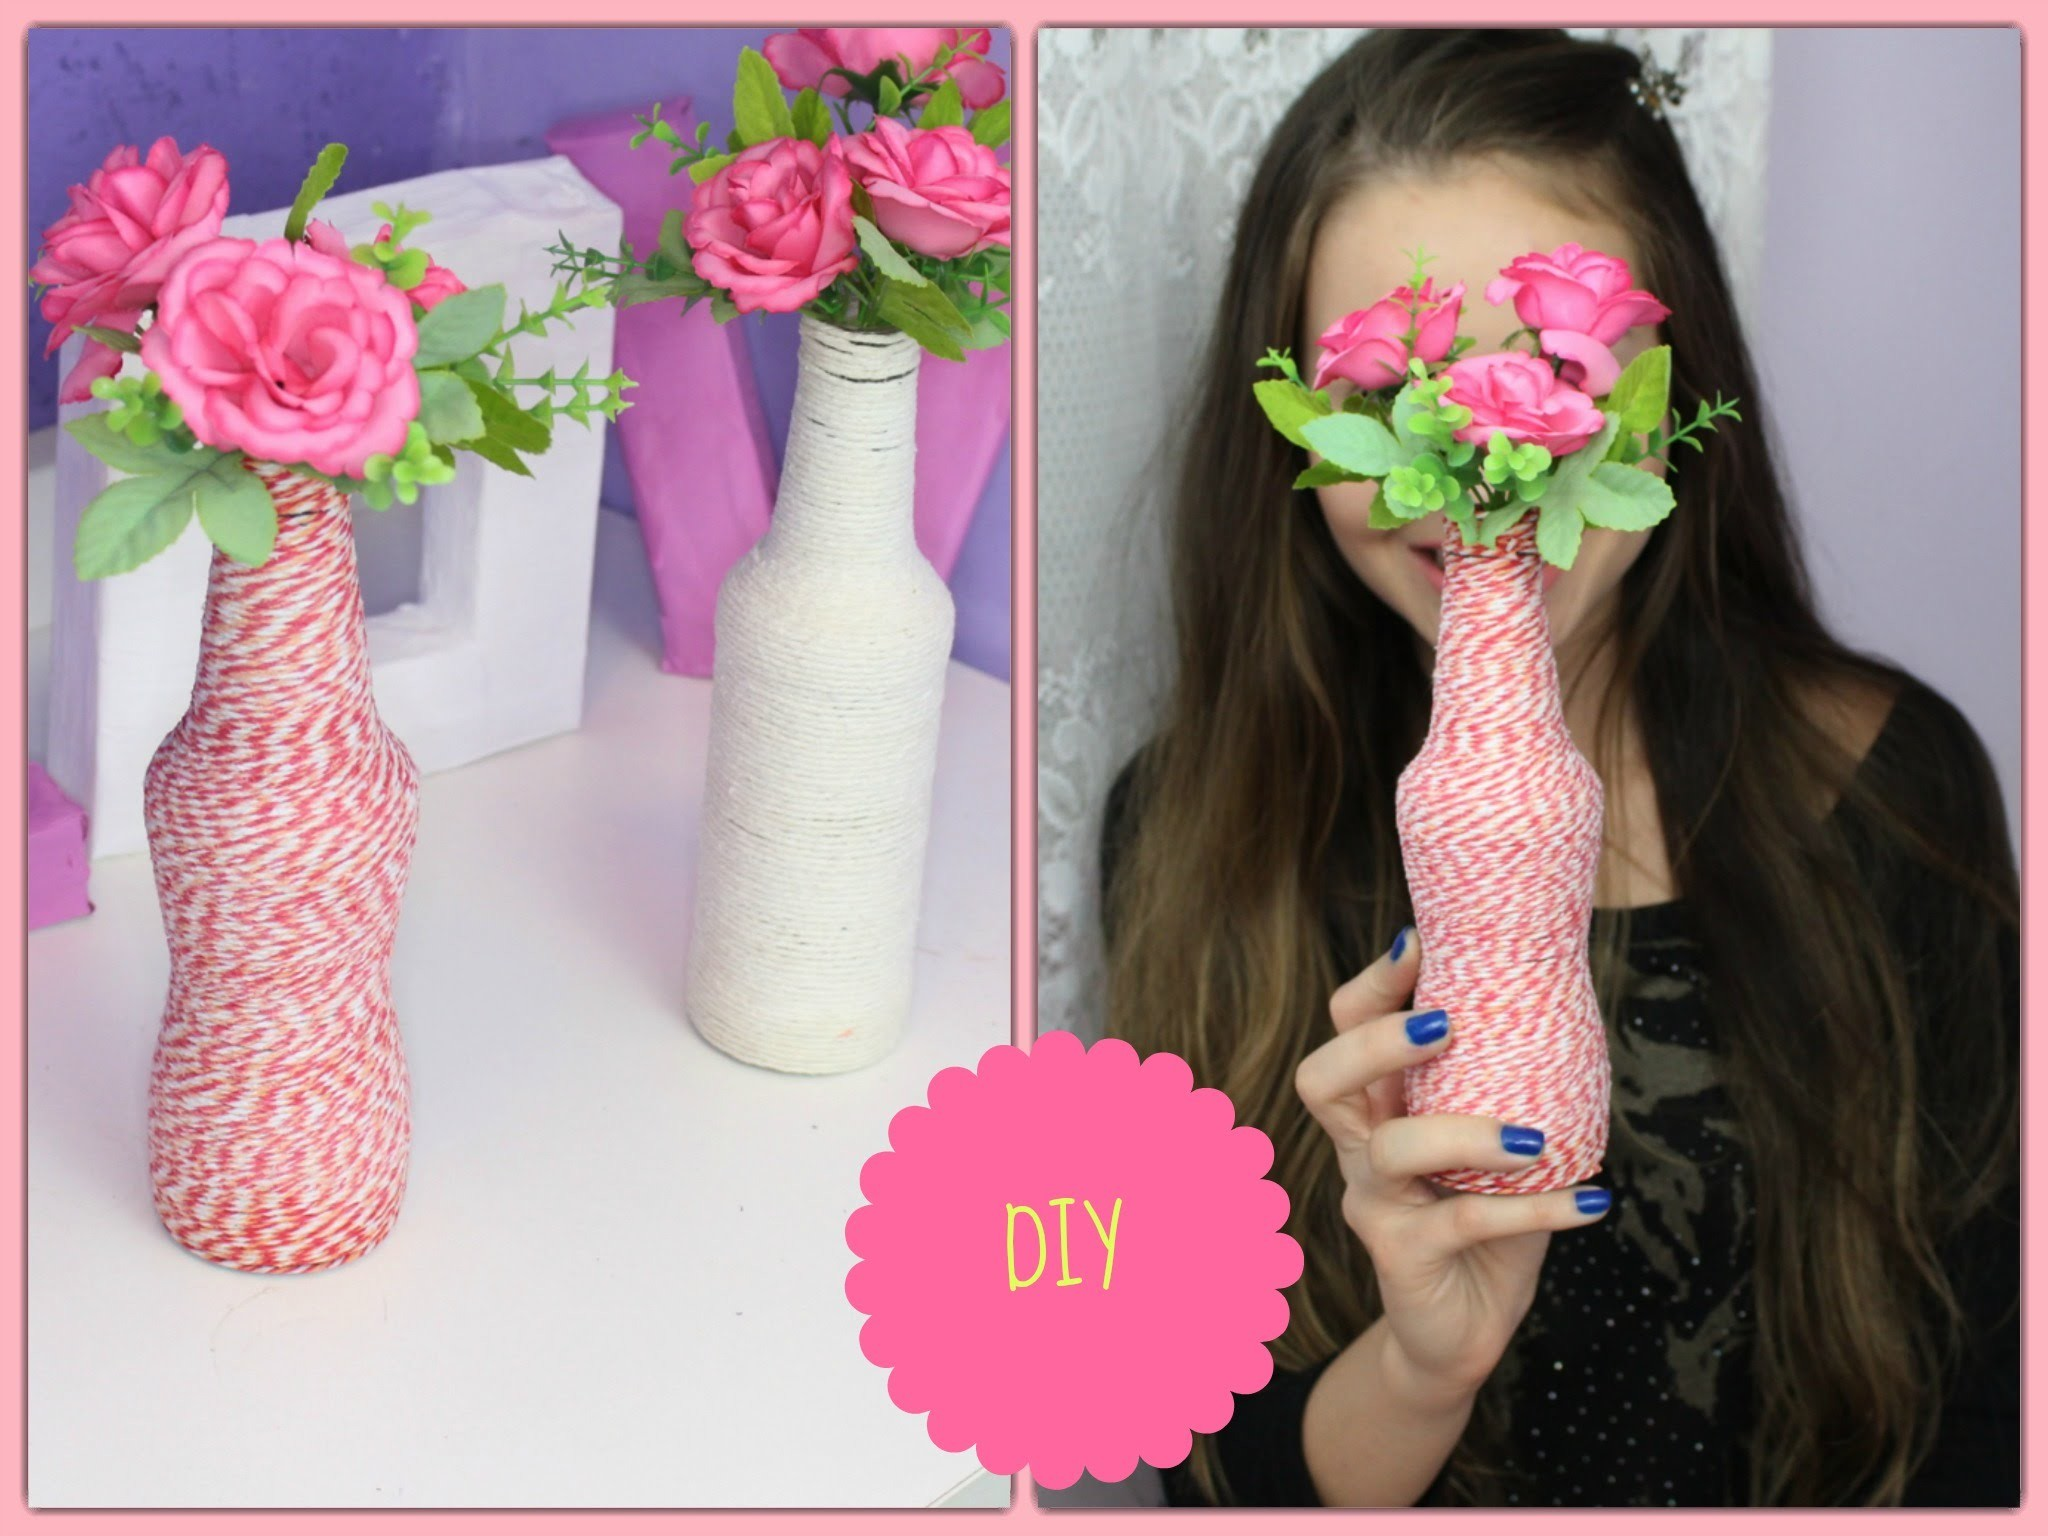 DIY- Garrafas decoradas com Barbante